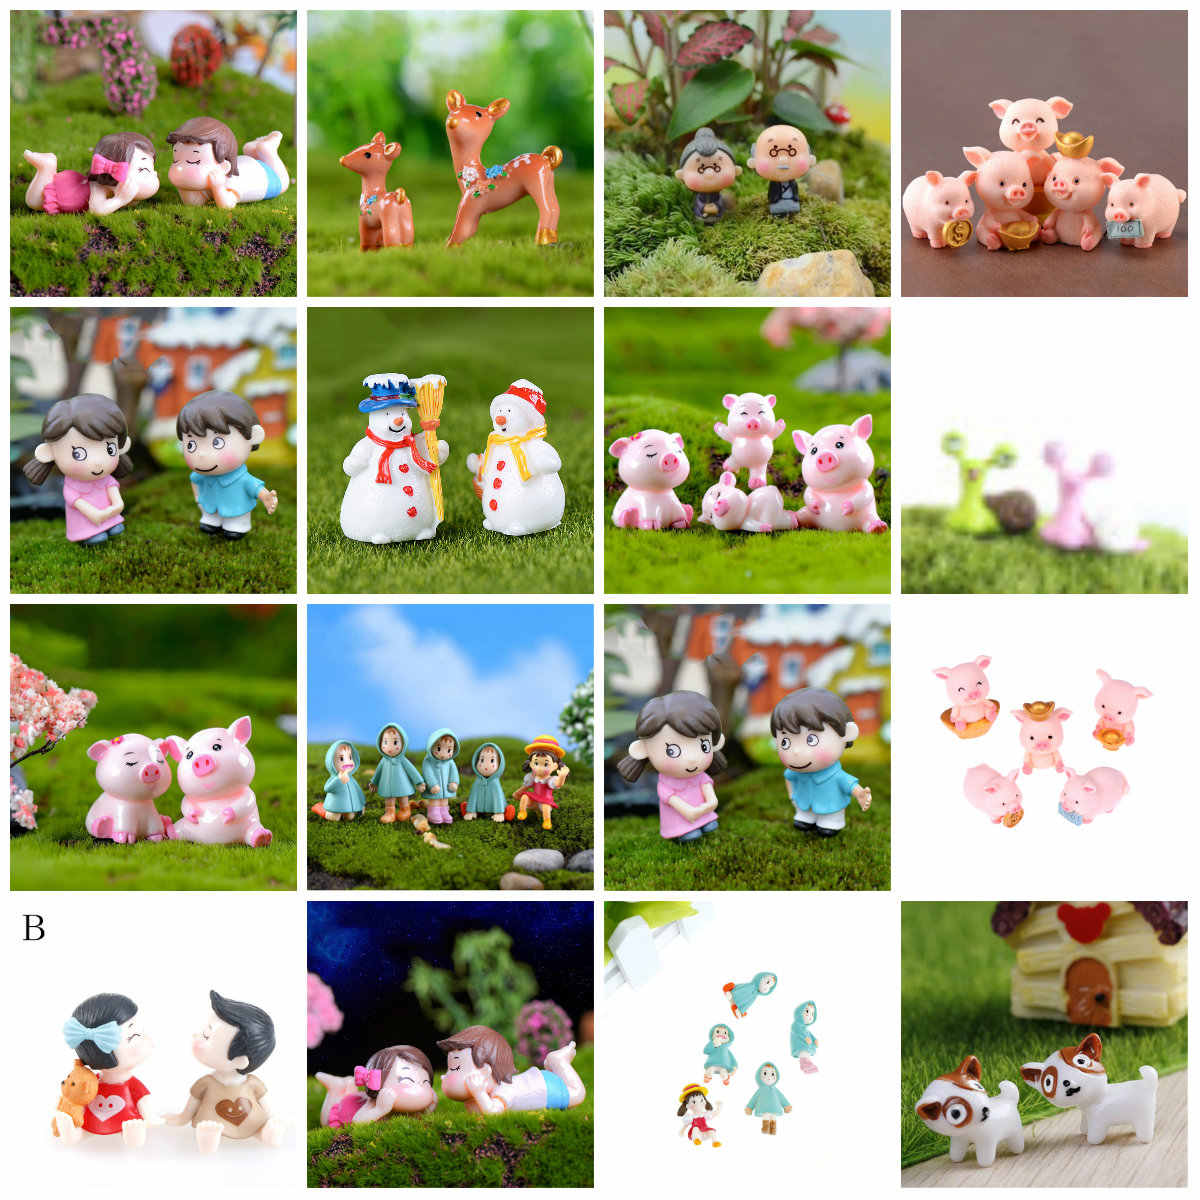 Home Decoration Multi-Style Sweety Lovers Couple/Fu Pig/Dog Figurines Miniatures Fairy Garden Gnome Moss Terrariums Resin Crafts